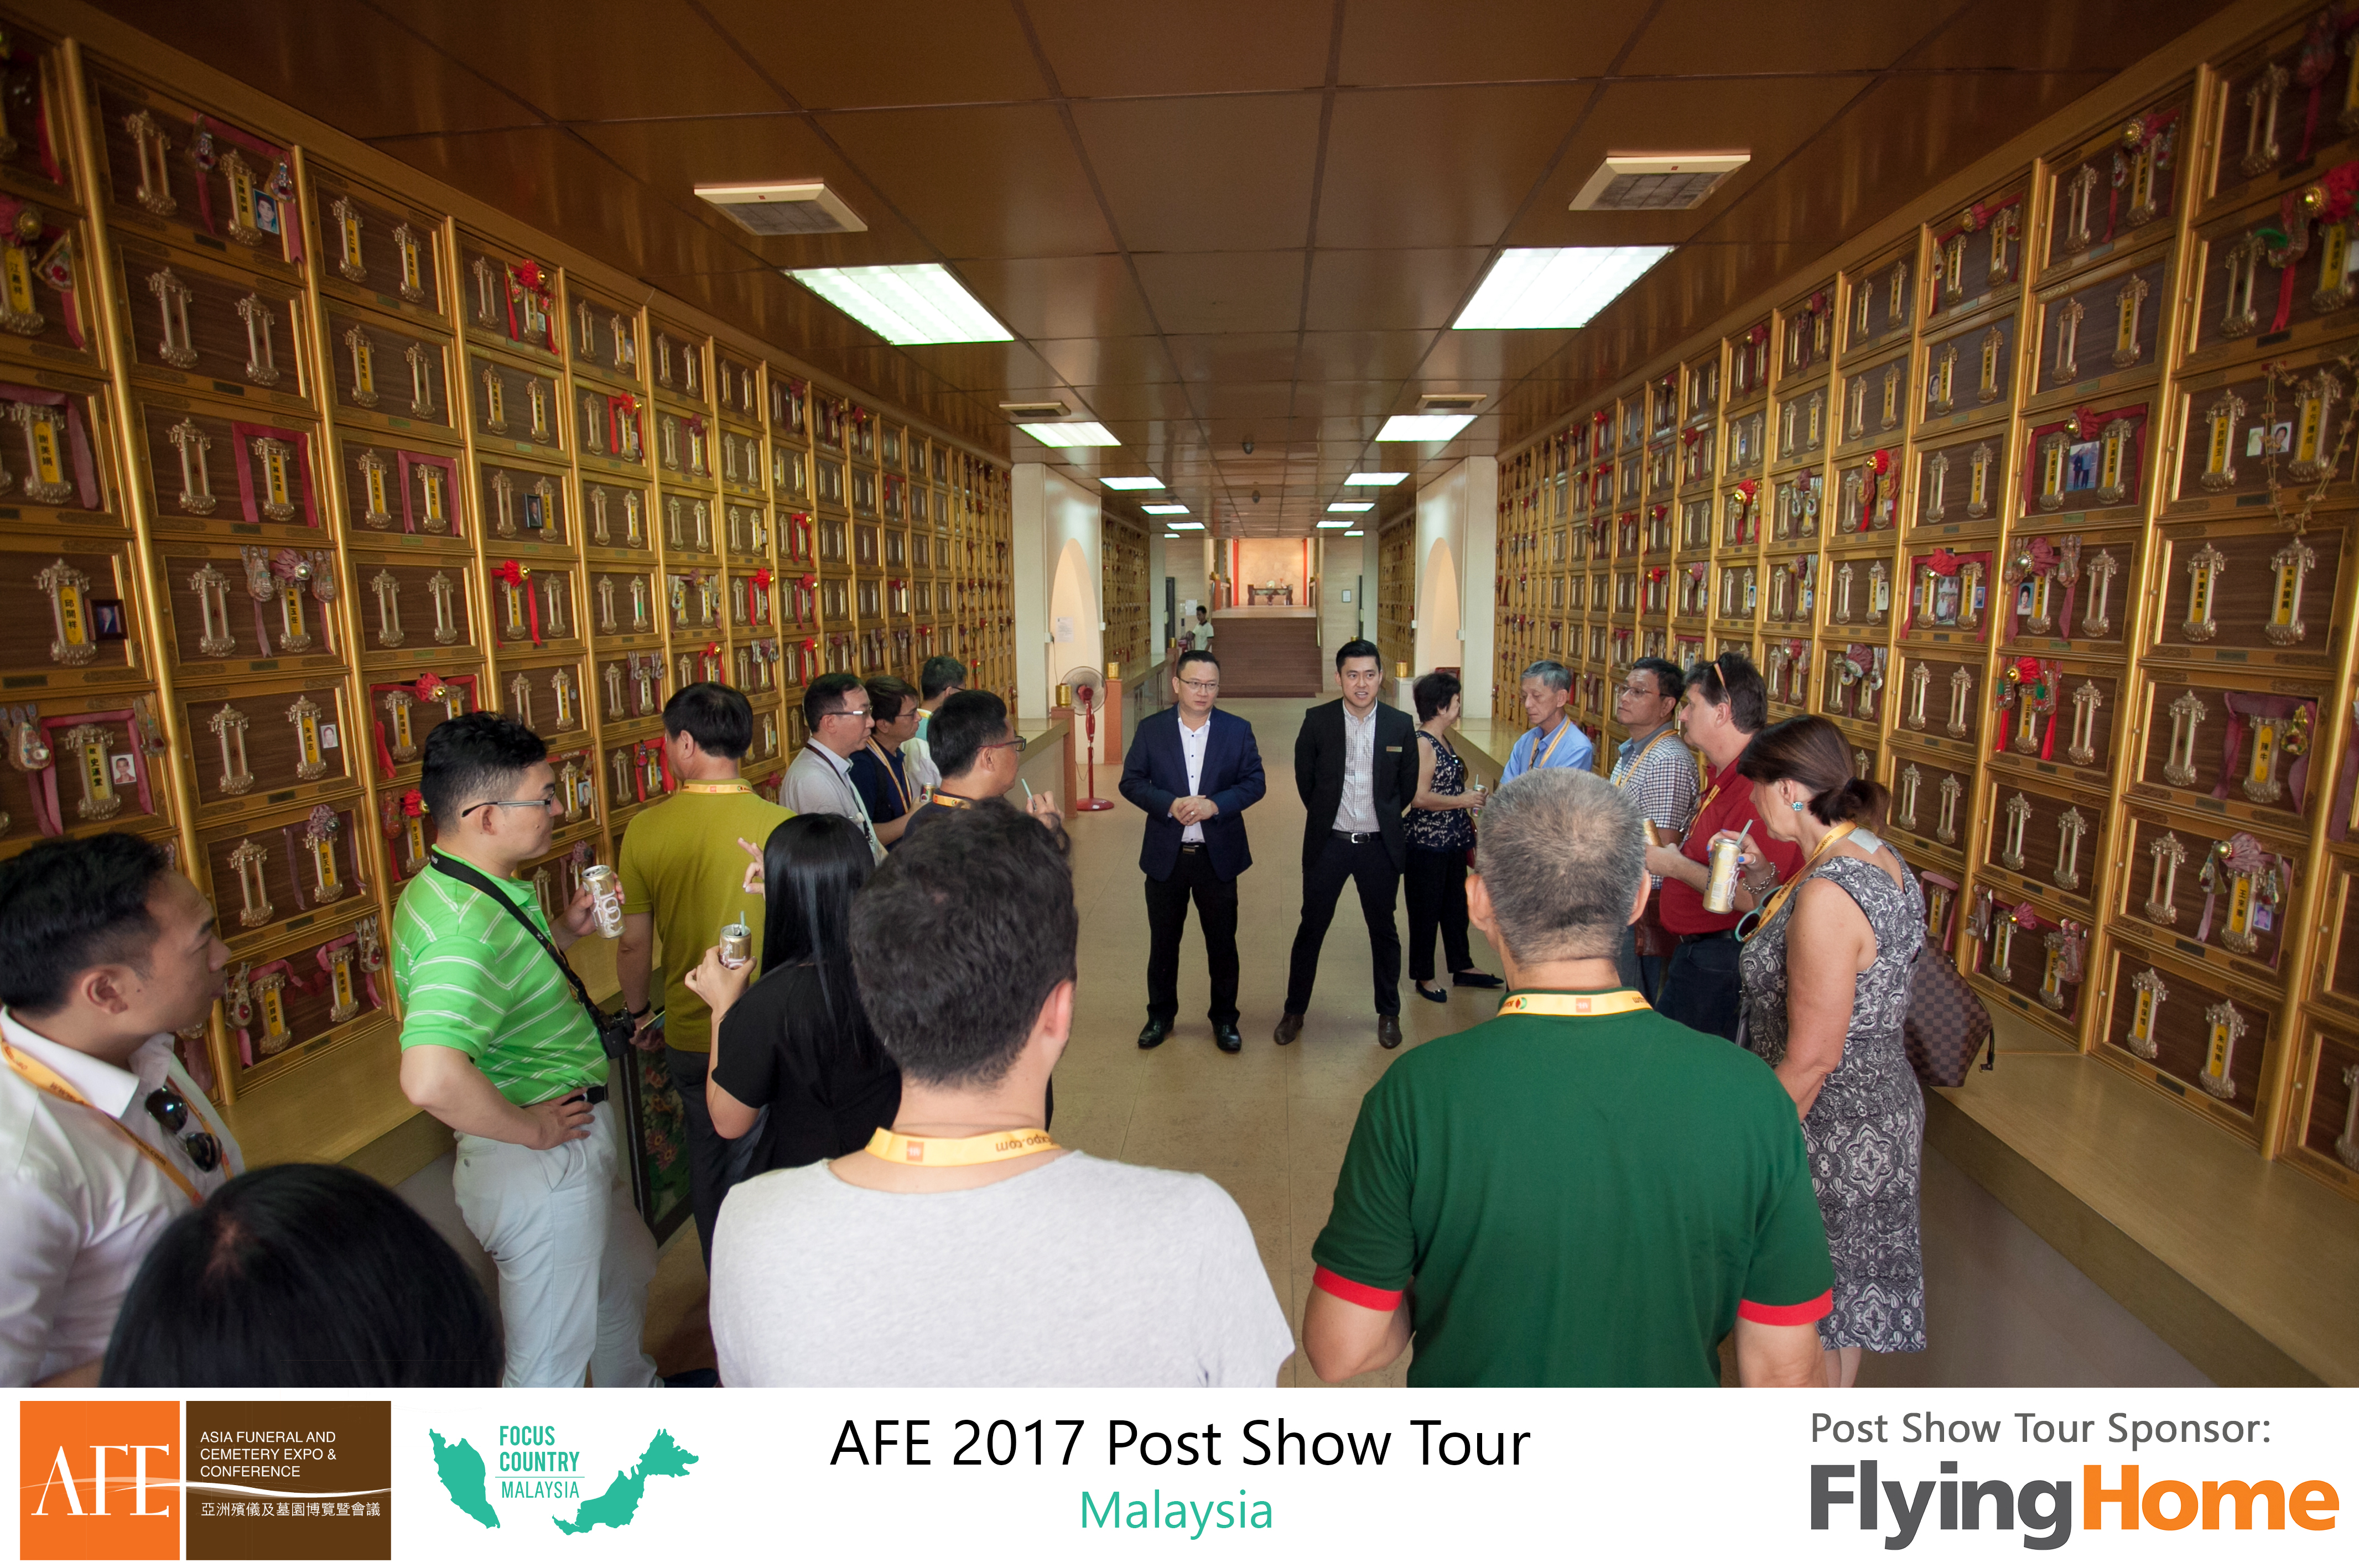 AFE Post Show Tour 2017 Day 4 - 11